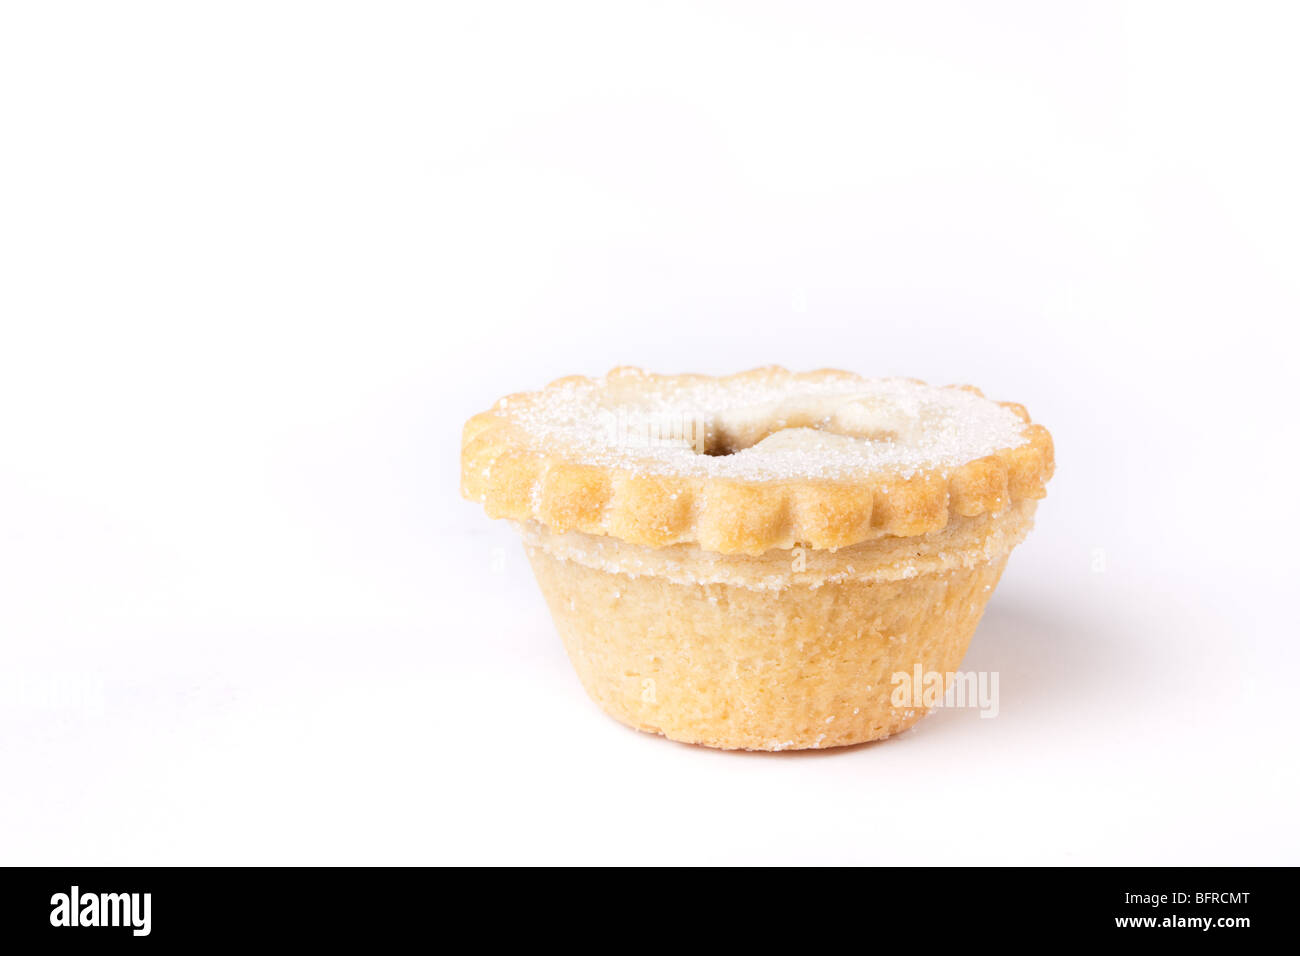 Single Sweet Mince Pie isolated against white background. - Stock Image